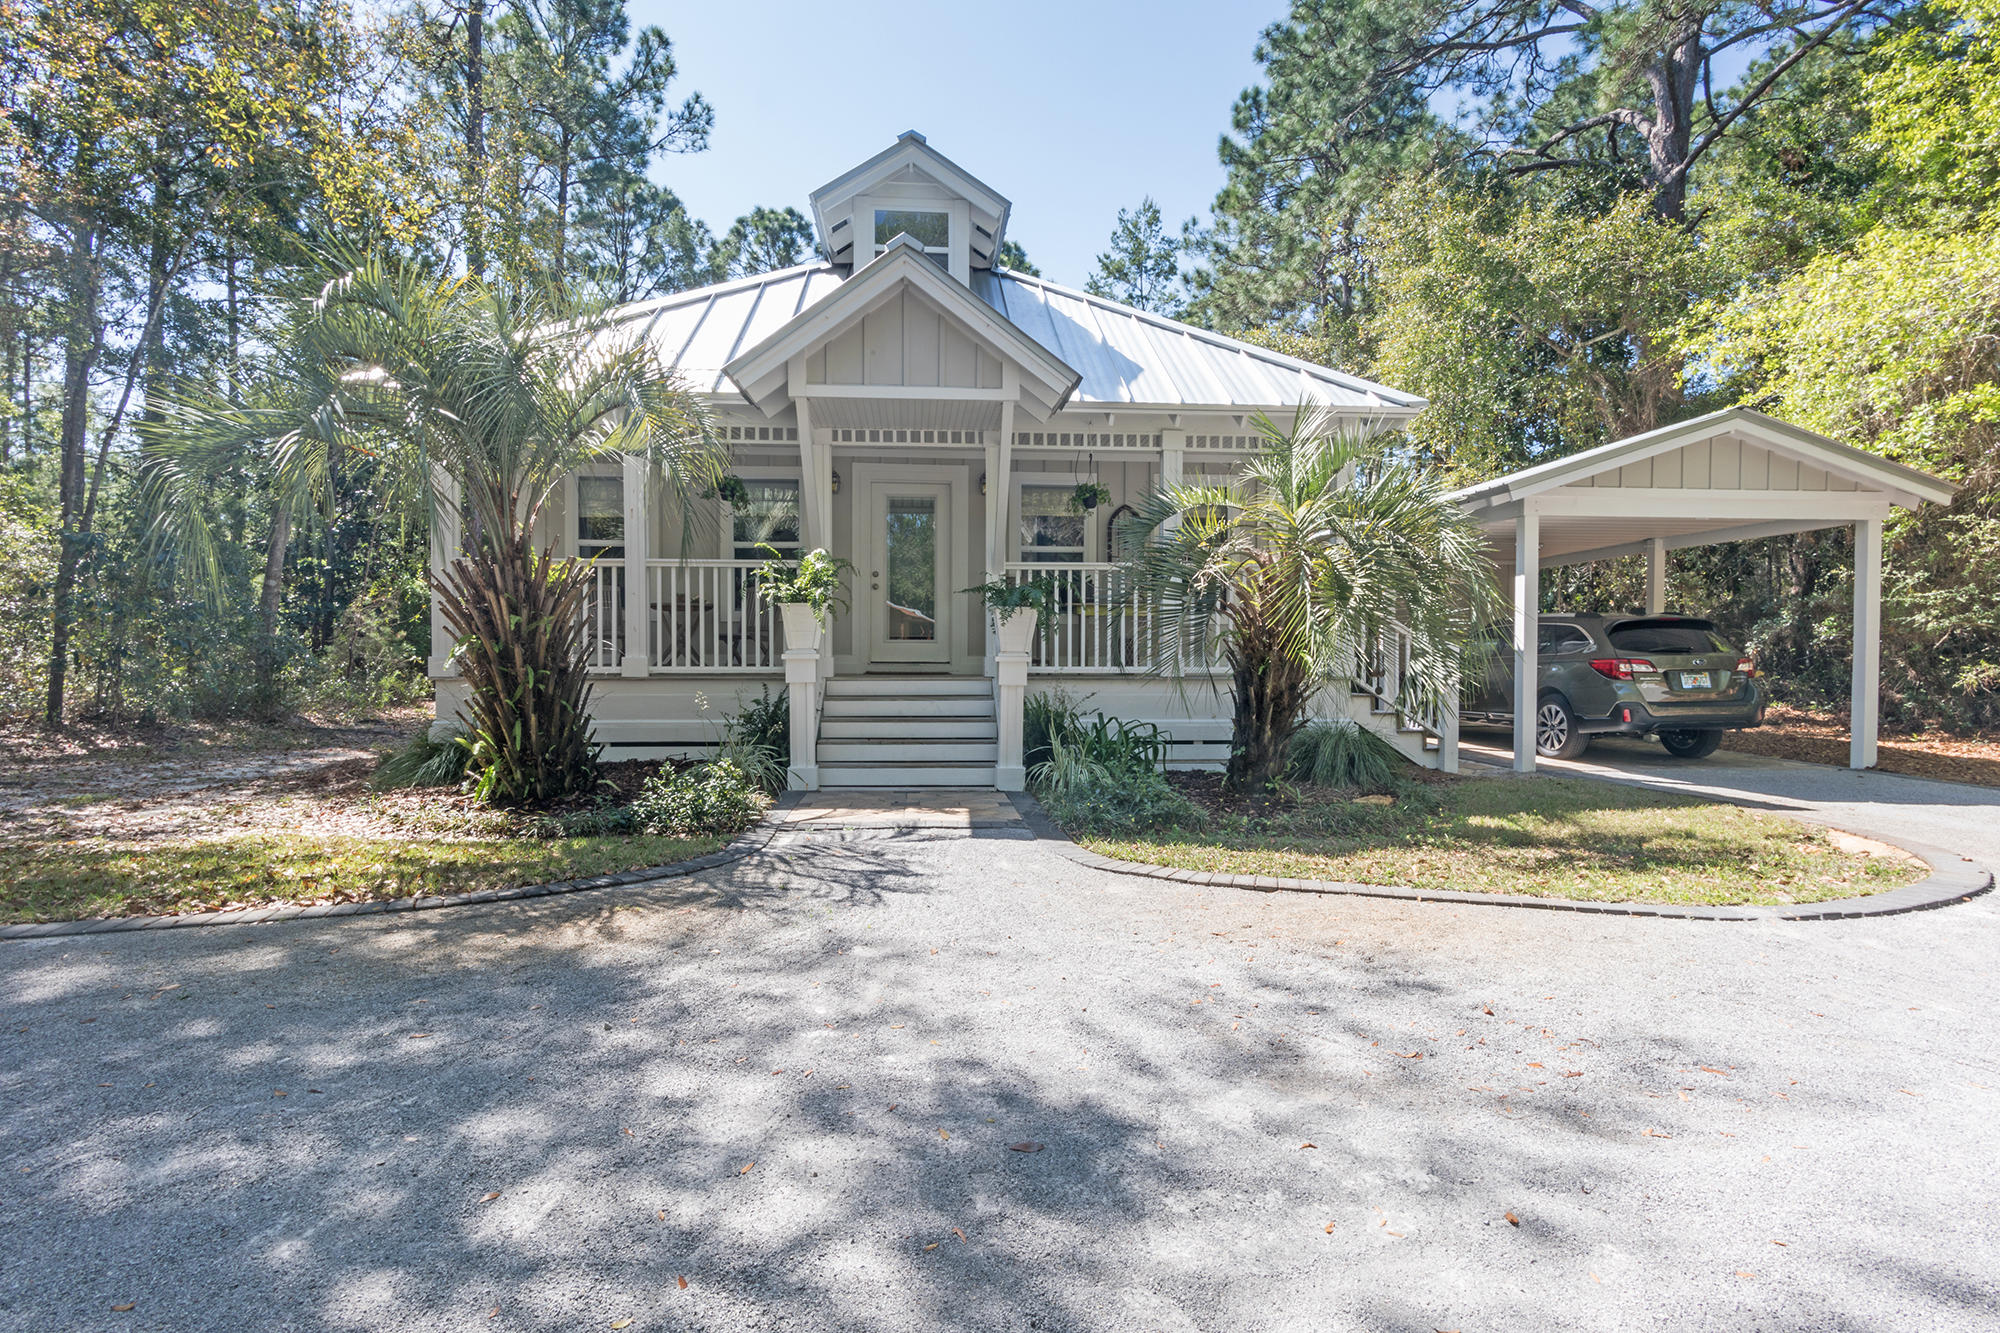 Photo of home for sale at 175 Chrysler, Santa Rosa Beach FL